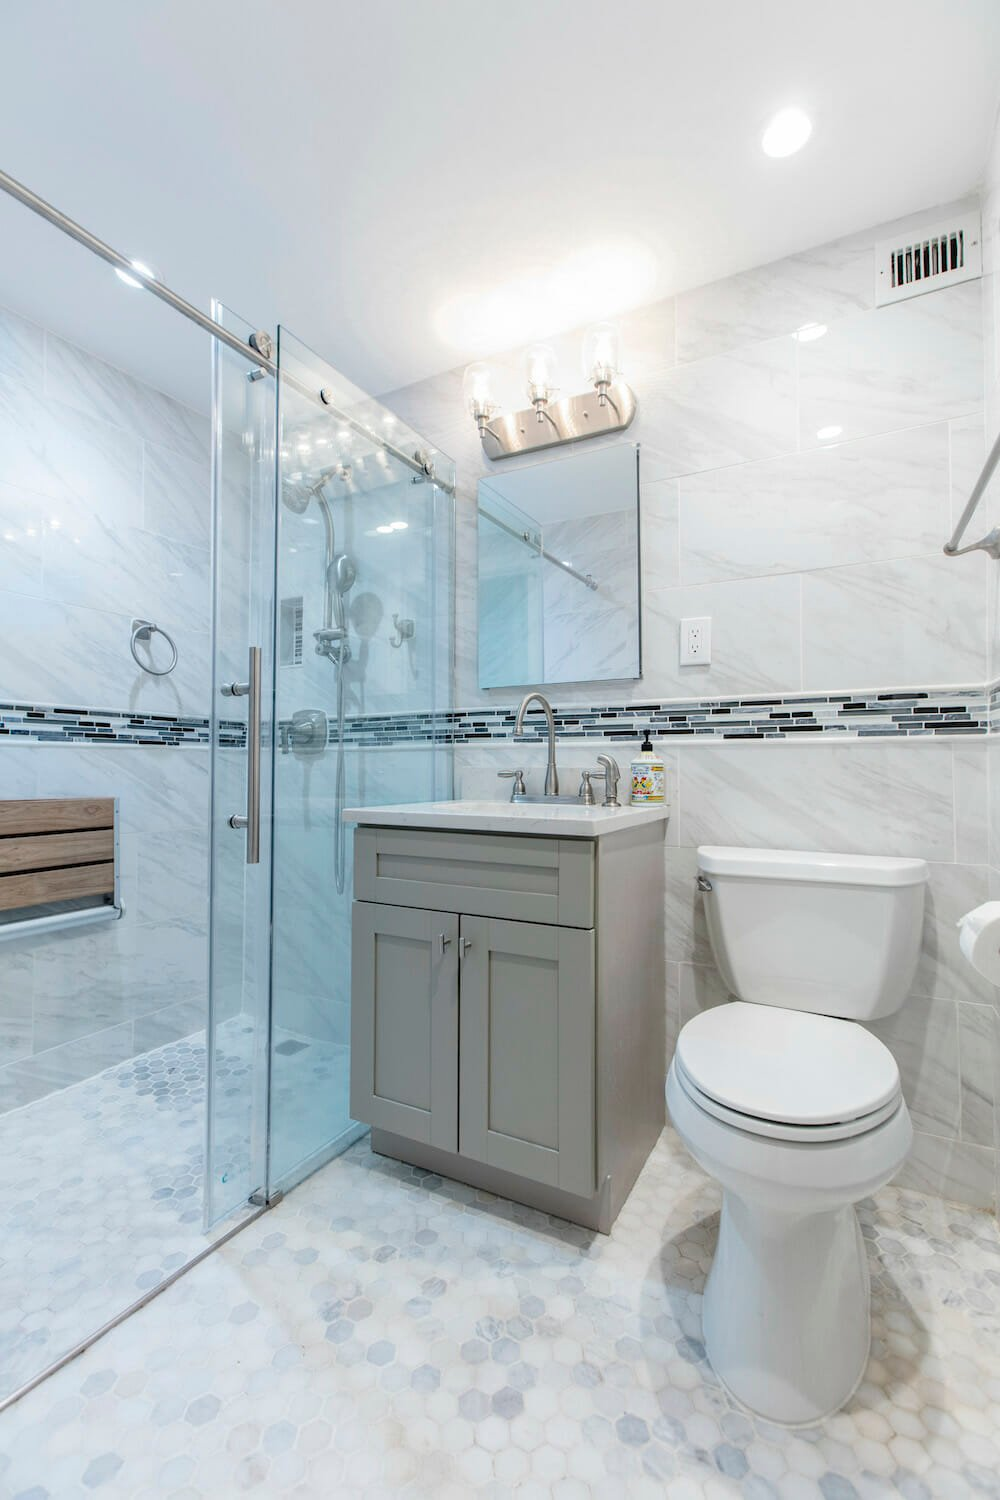 accessible design, shower seat, senior-friendly, bathroom trends 2019